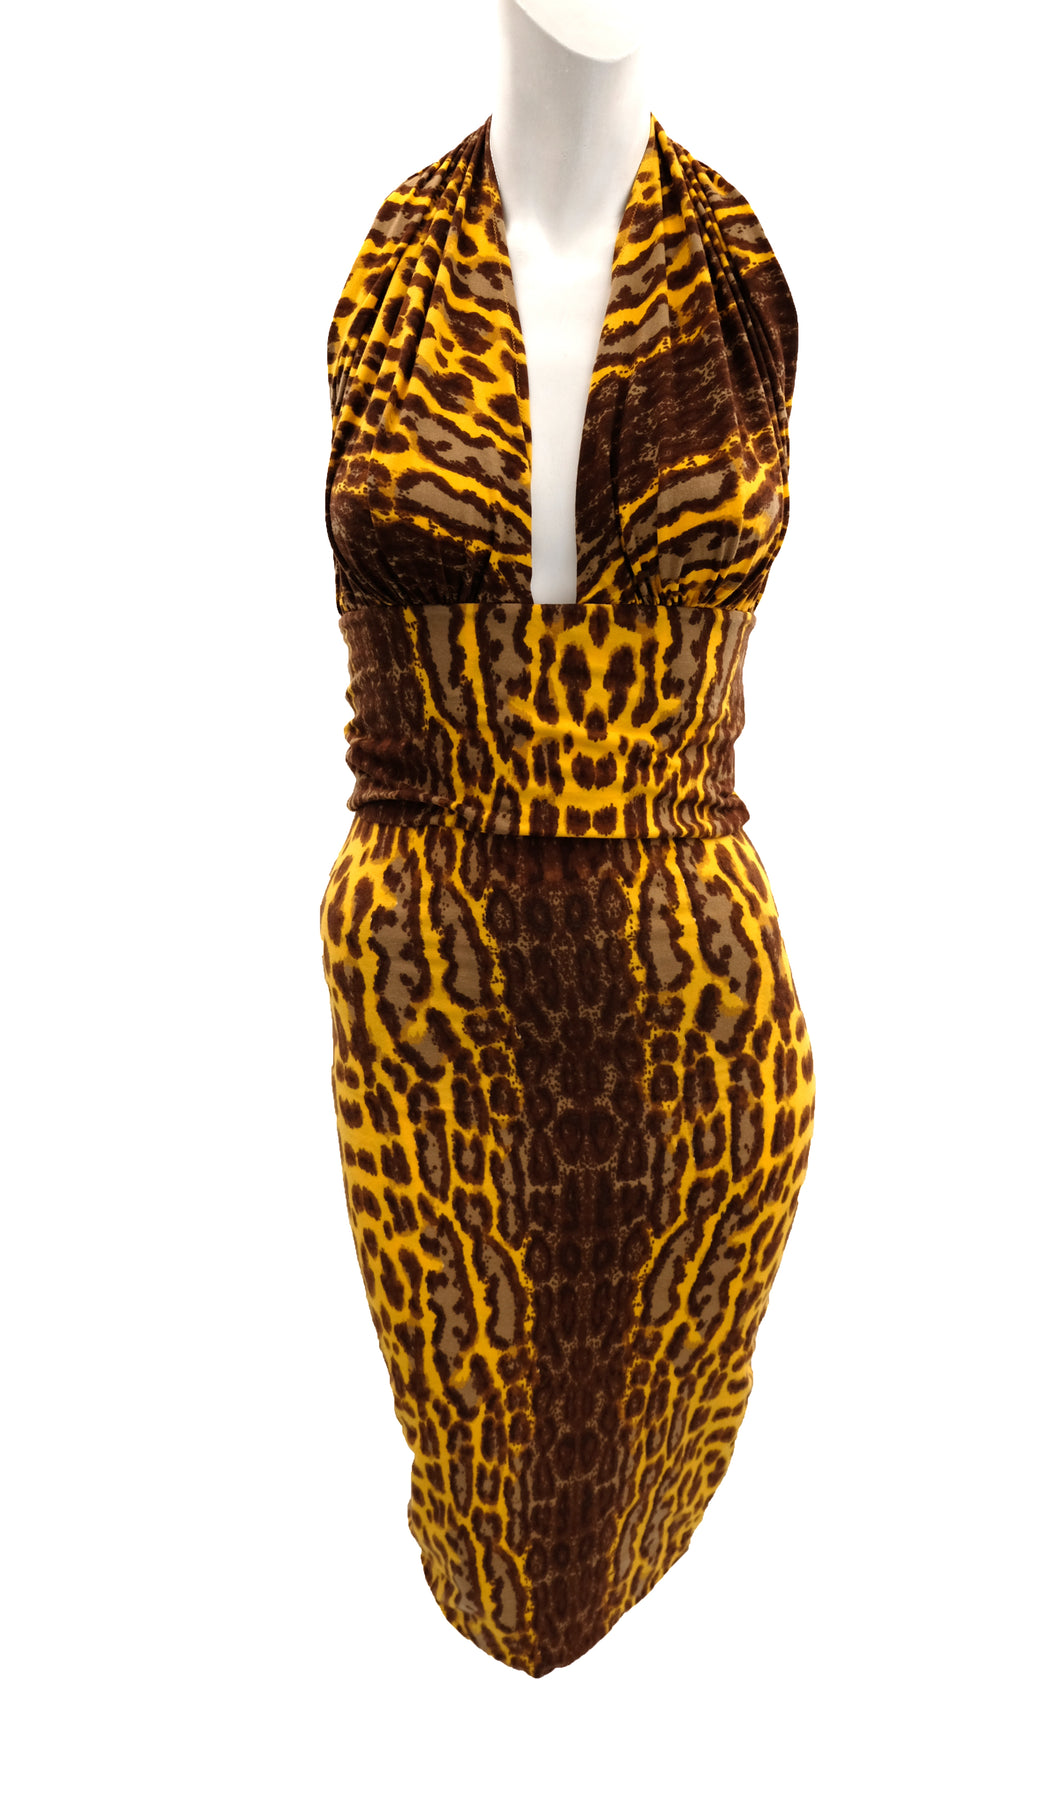 Sonia Fares Paris Vintage Leopard Print Ensemble, UK10